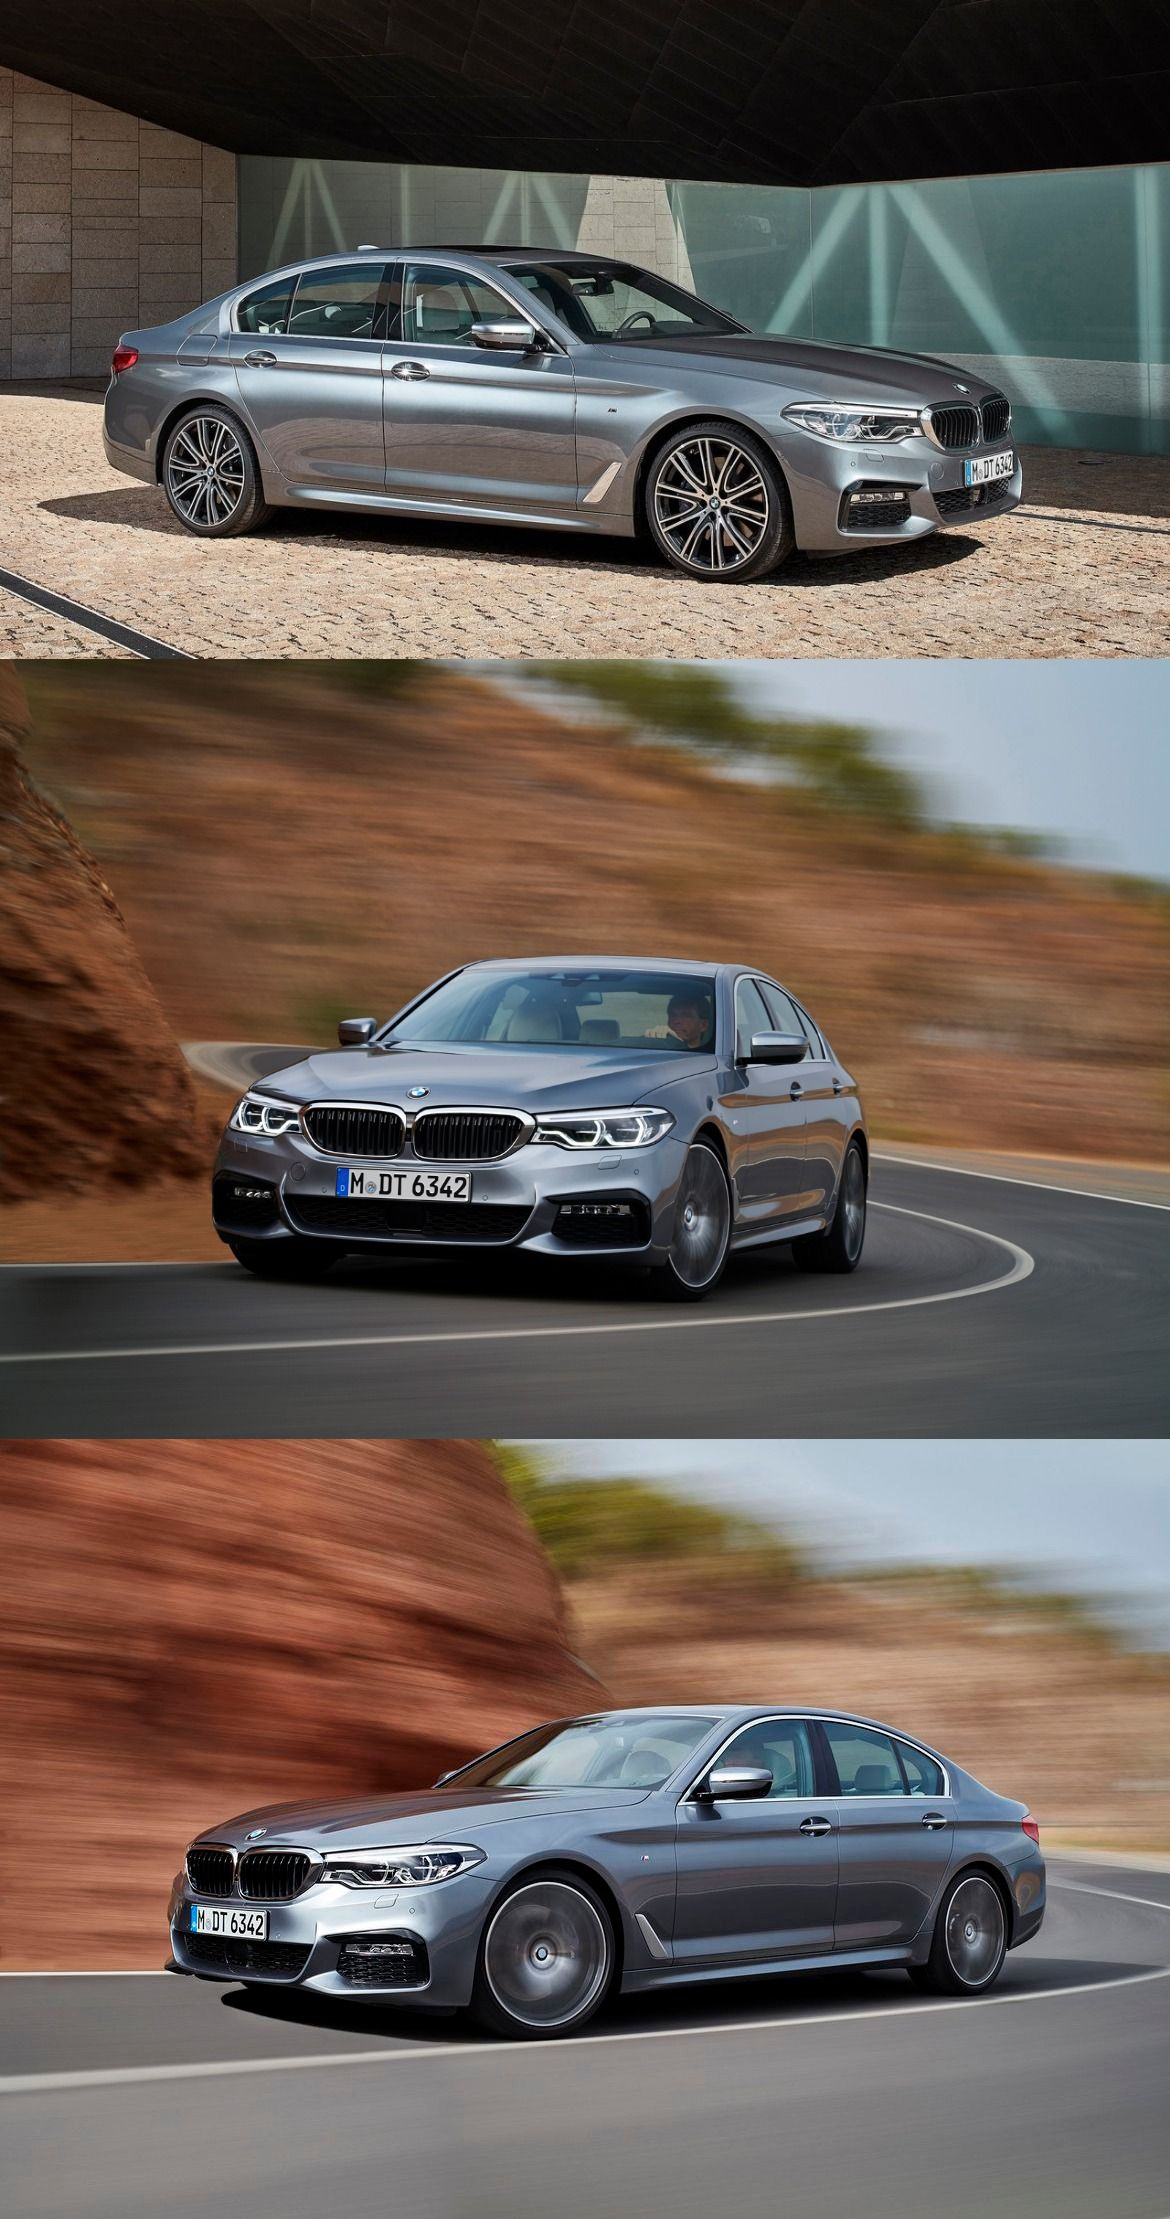 Next Gen 2017 Bmw 5 Series Imported To India For Testing